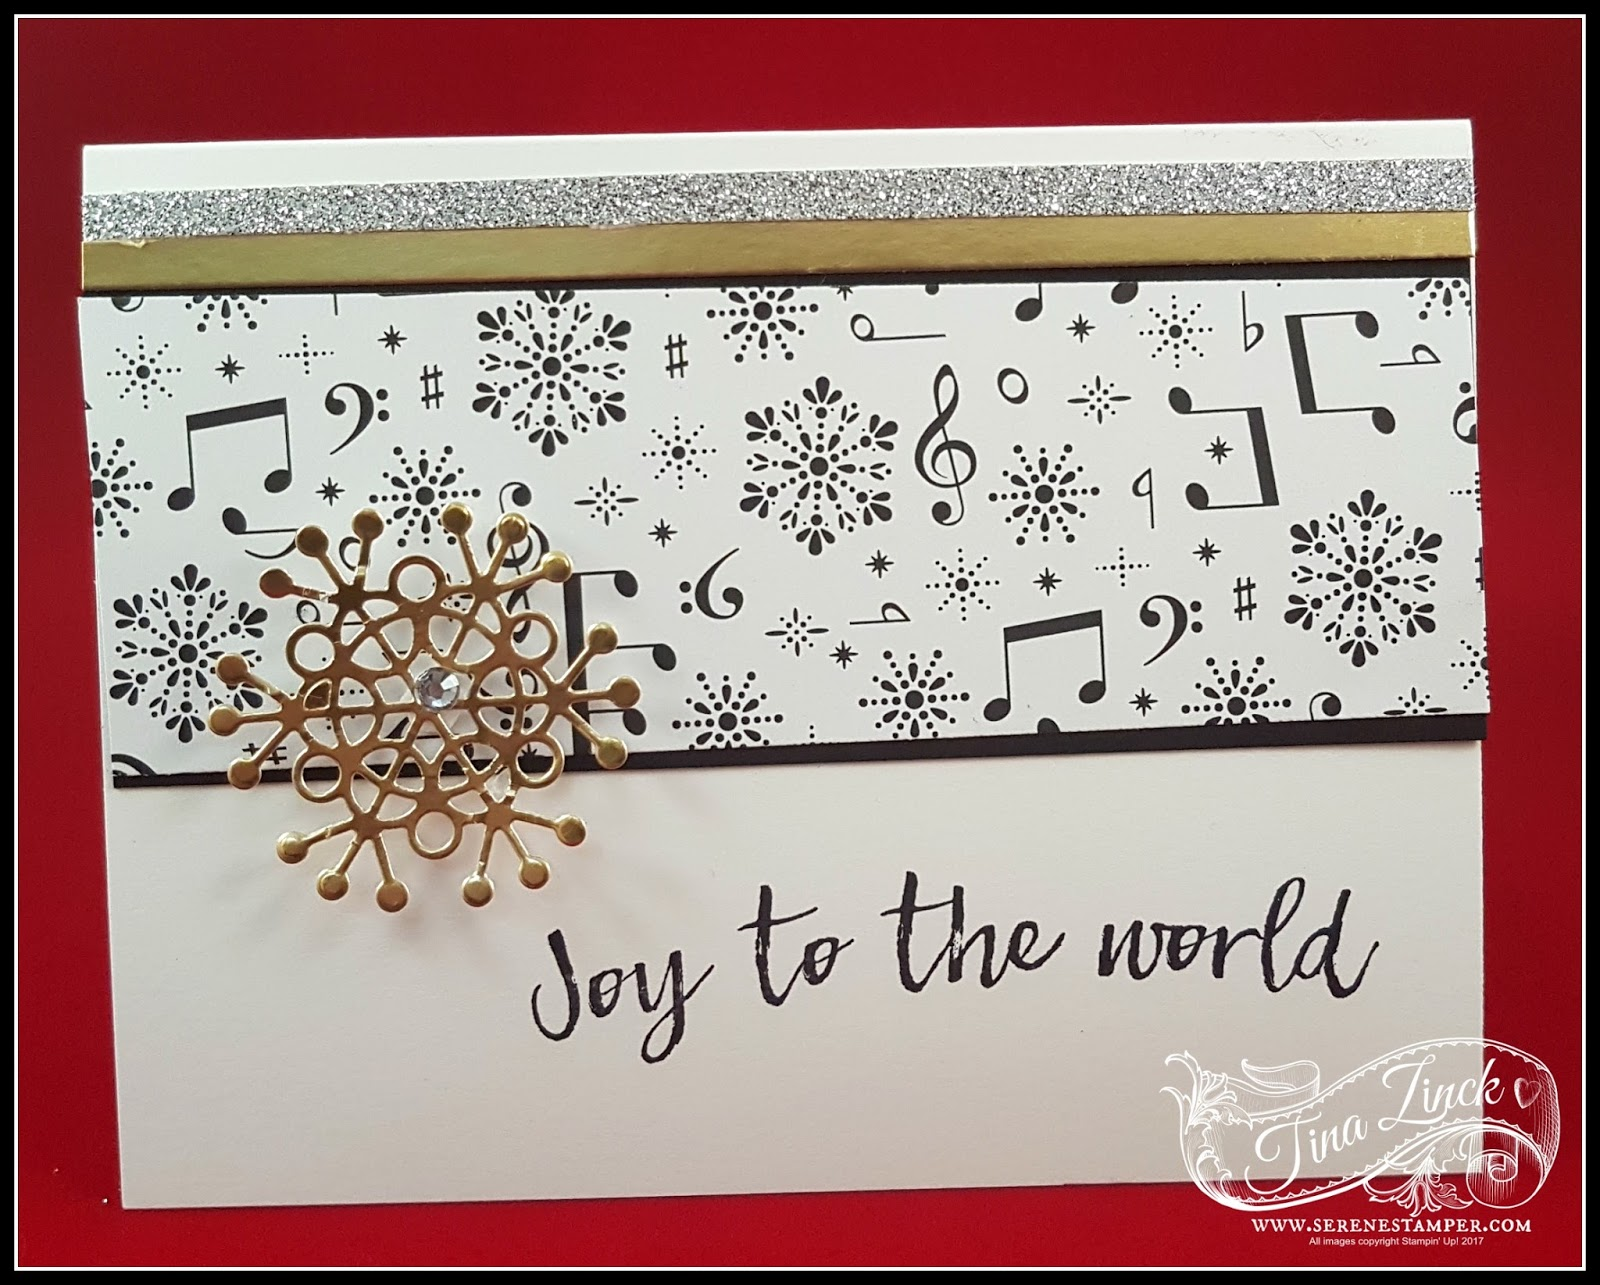 The Serene Stamper: Merry Music Christmas Cards